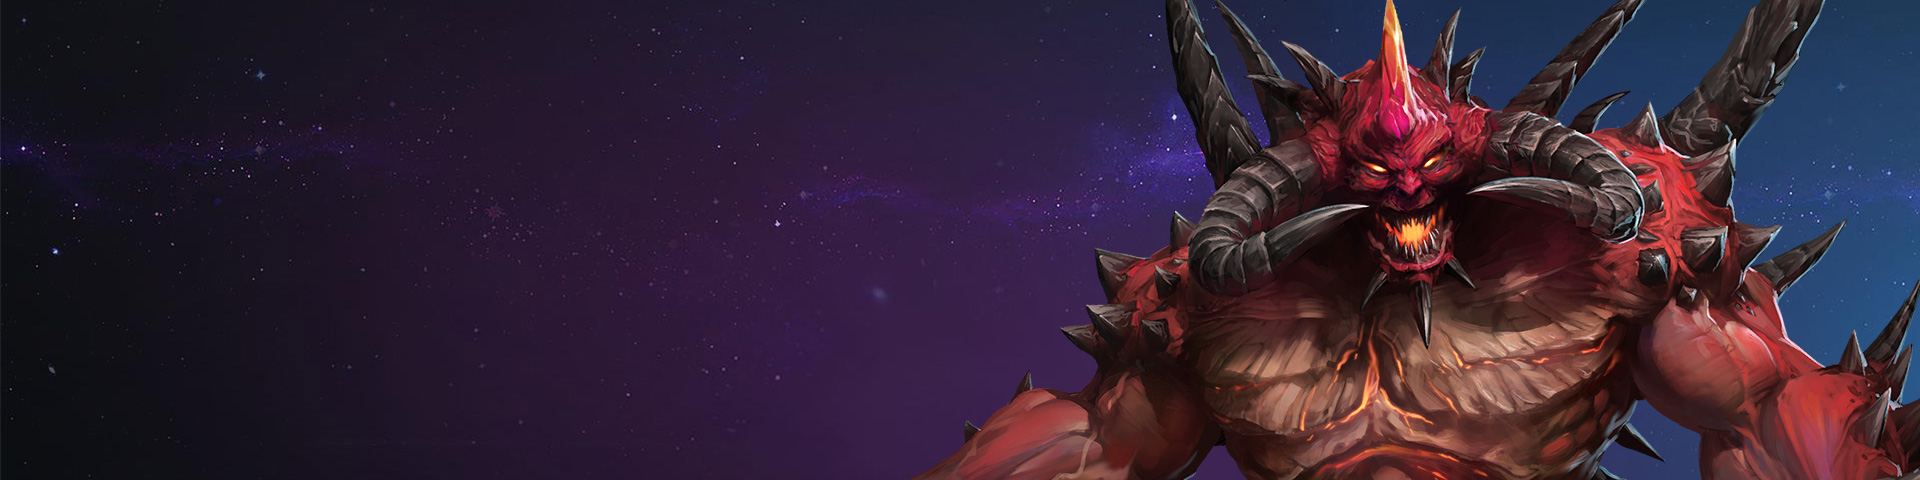 Math of the Storm: Diablo rework in Patch 33 0 - Articles - Tempo Storm